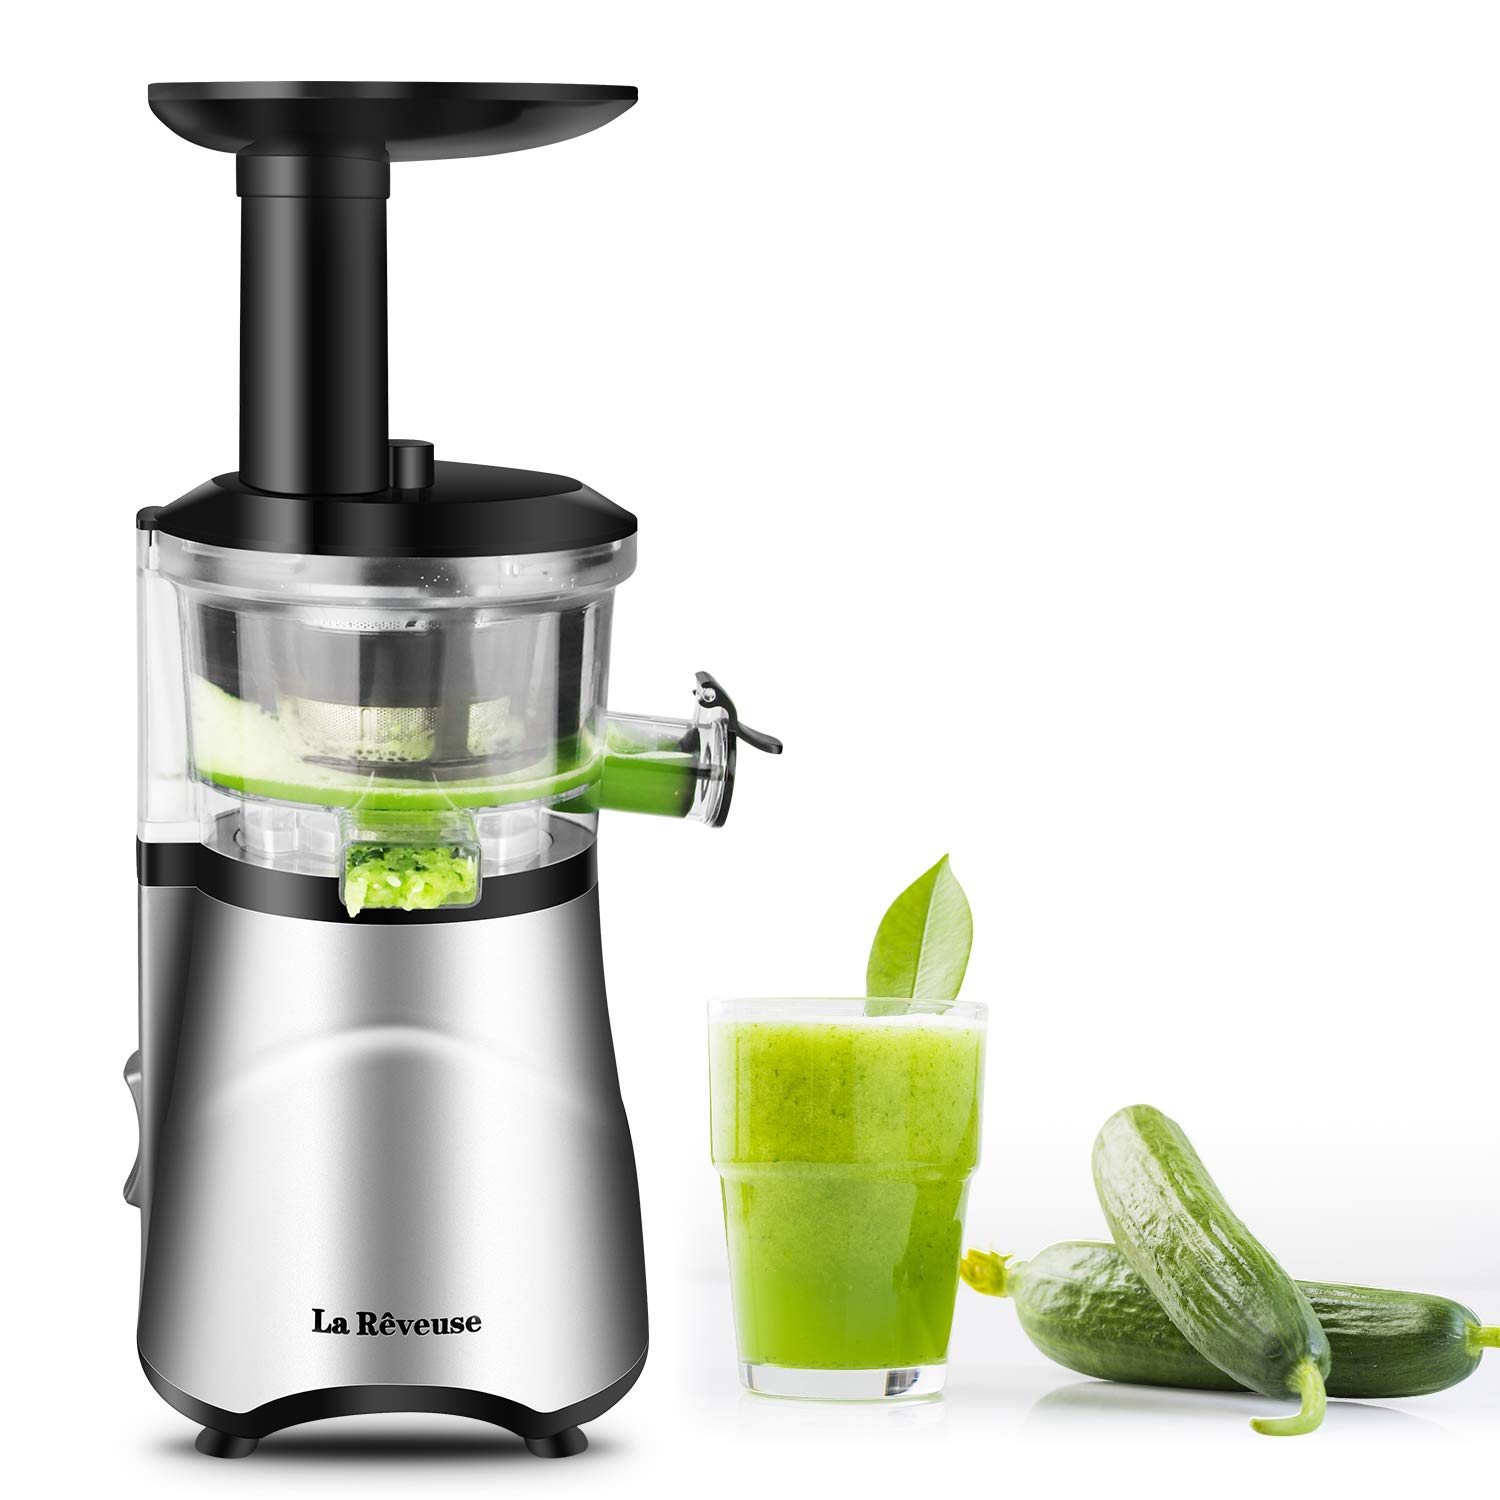 La Reveuse Slow Masticating Juicer Extractor with Quiet Motor Reverse Function and Clean Brush Easy to Operate & Clean -BPA Free (Silver) by La Reveuse